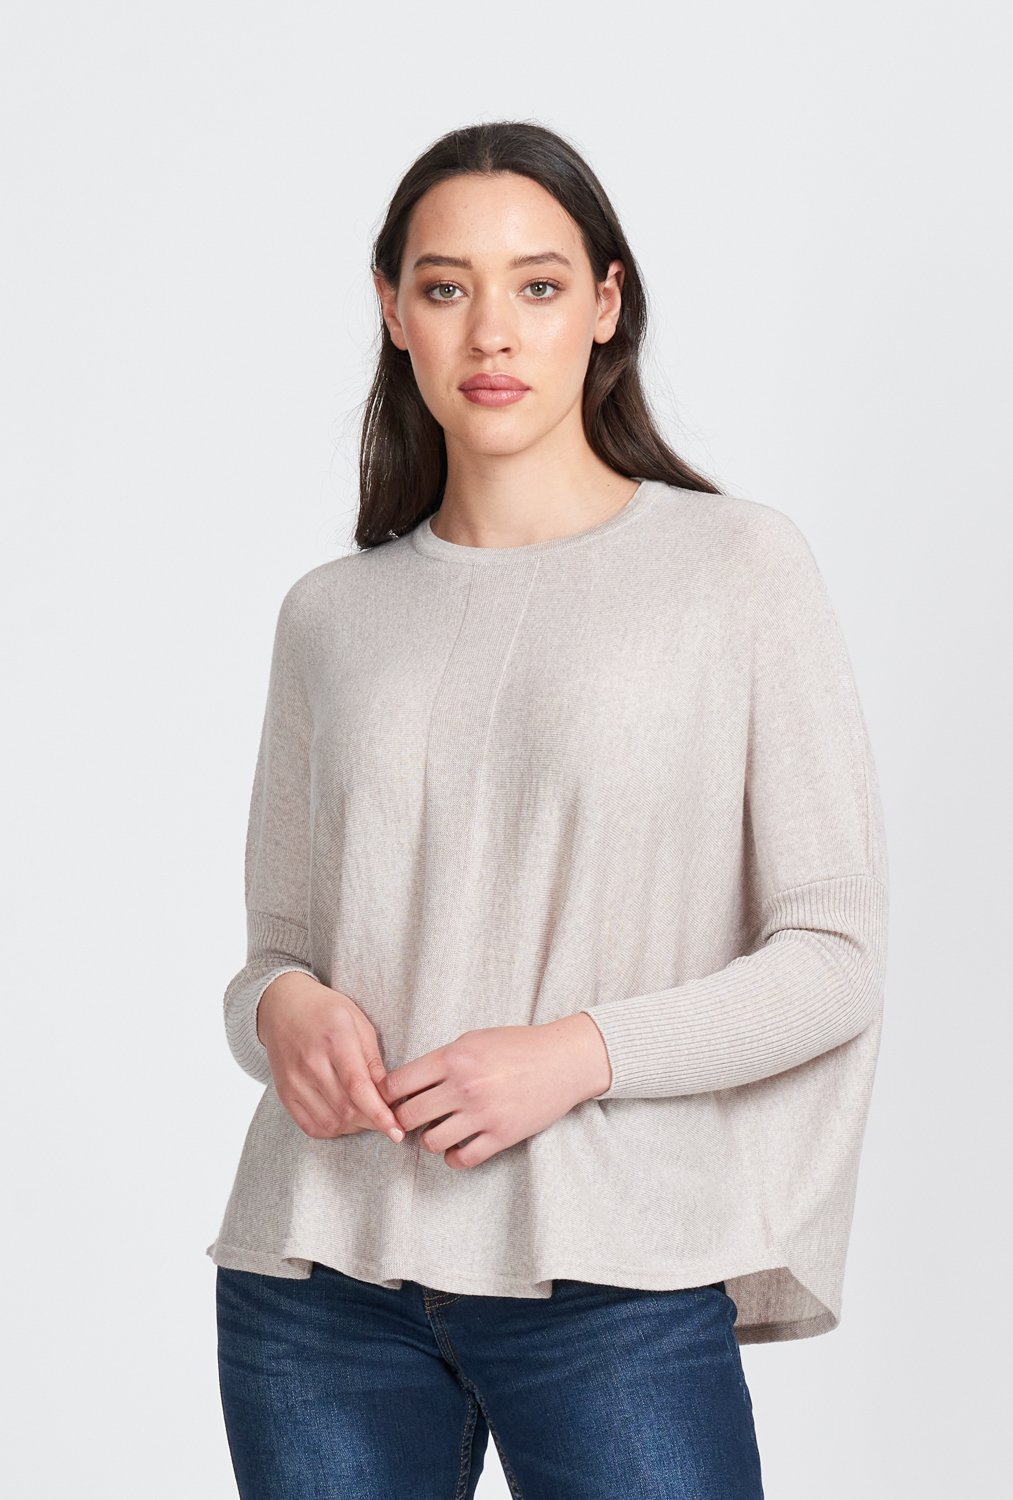 OVERSIZED RIB SLEEVE JUMPER - Woolshed Gallery